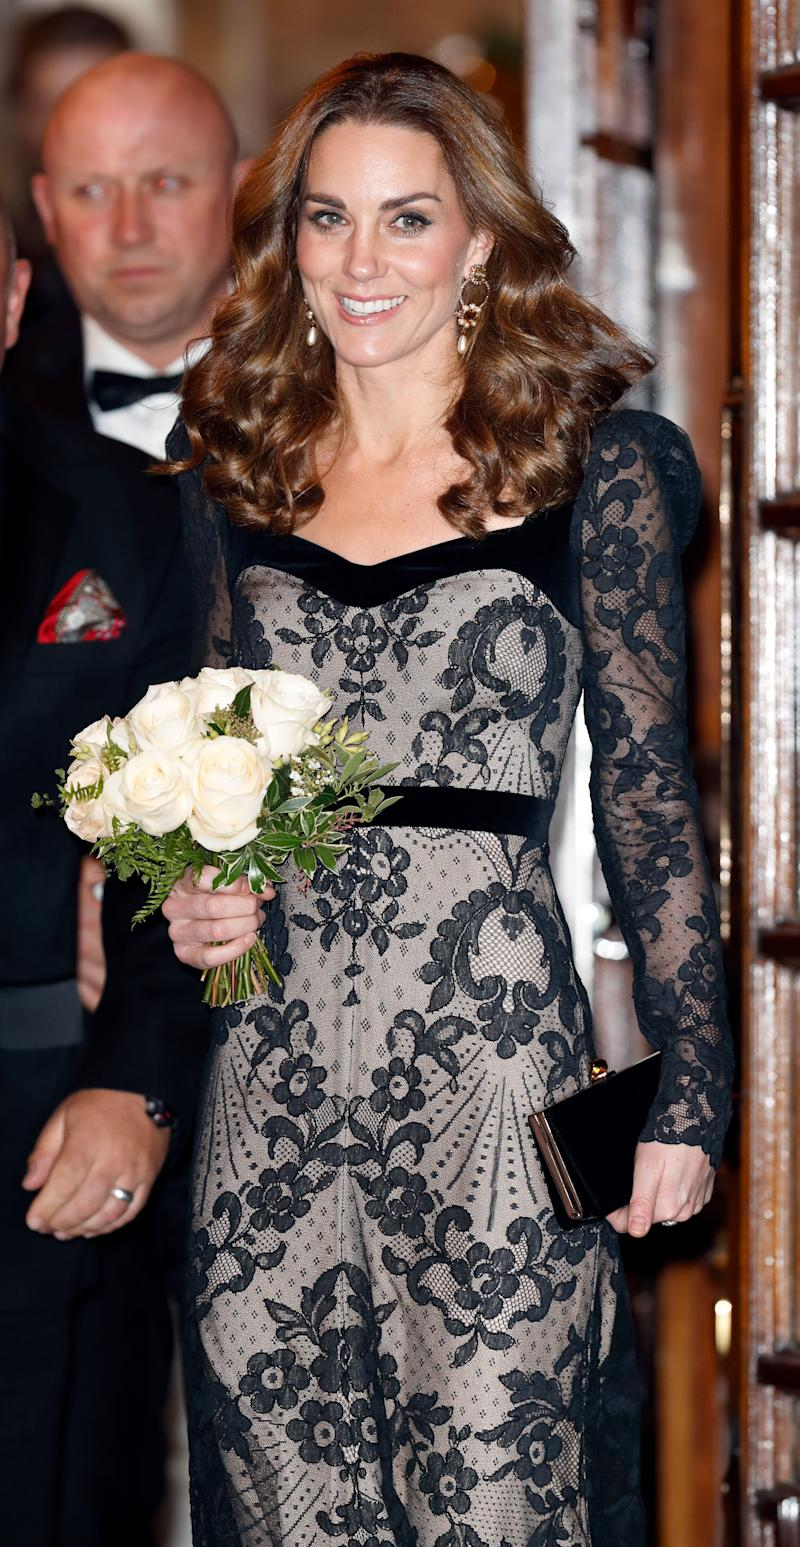 She wore this stunning lace gown, also byAlexander McQueen, one of her favourite designers, to the Royal Variety Performance at the Palladium Theatre in London.